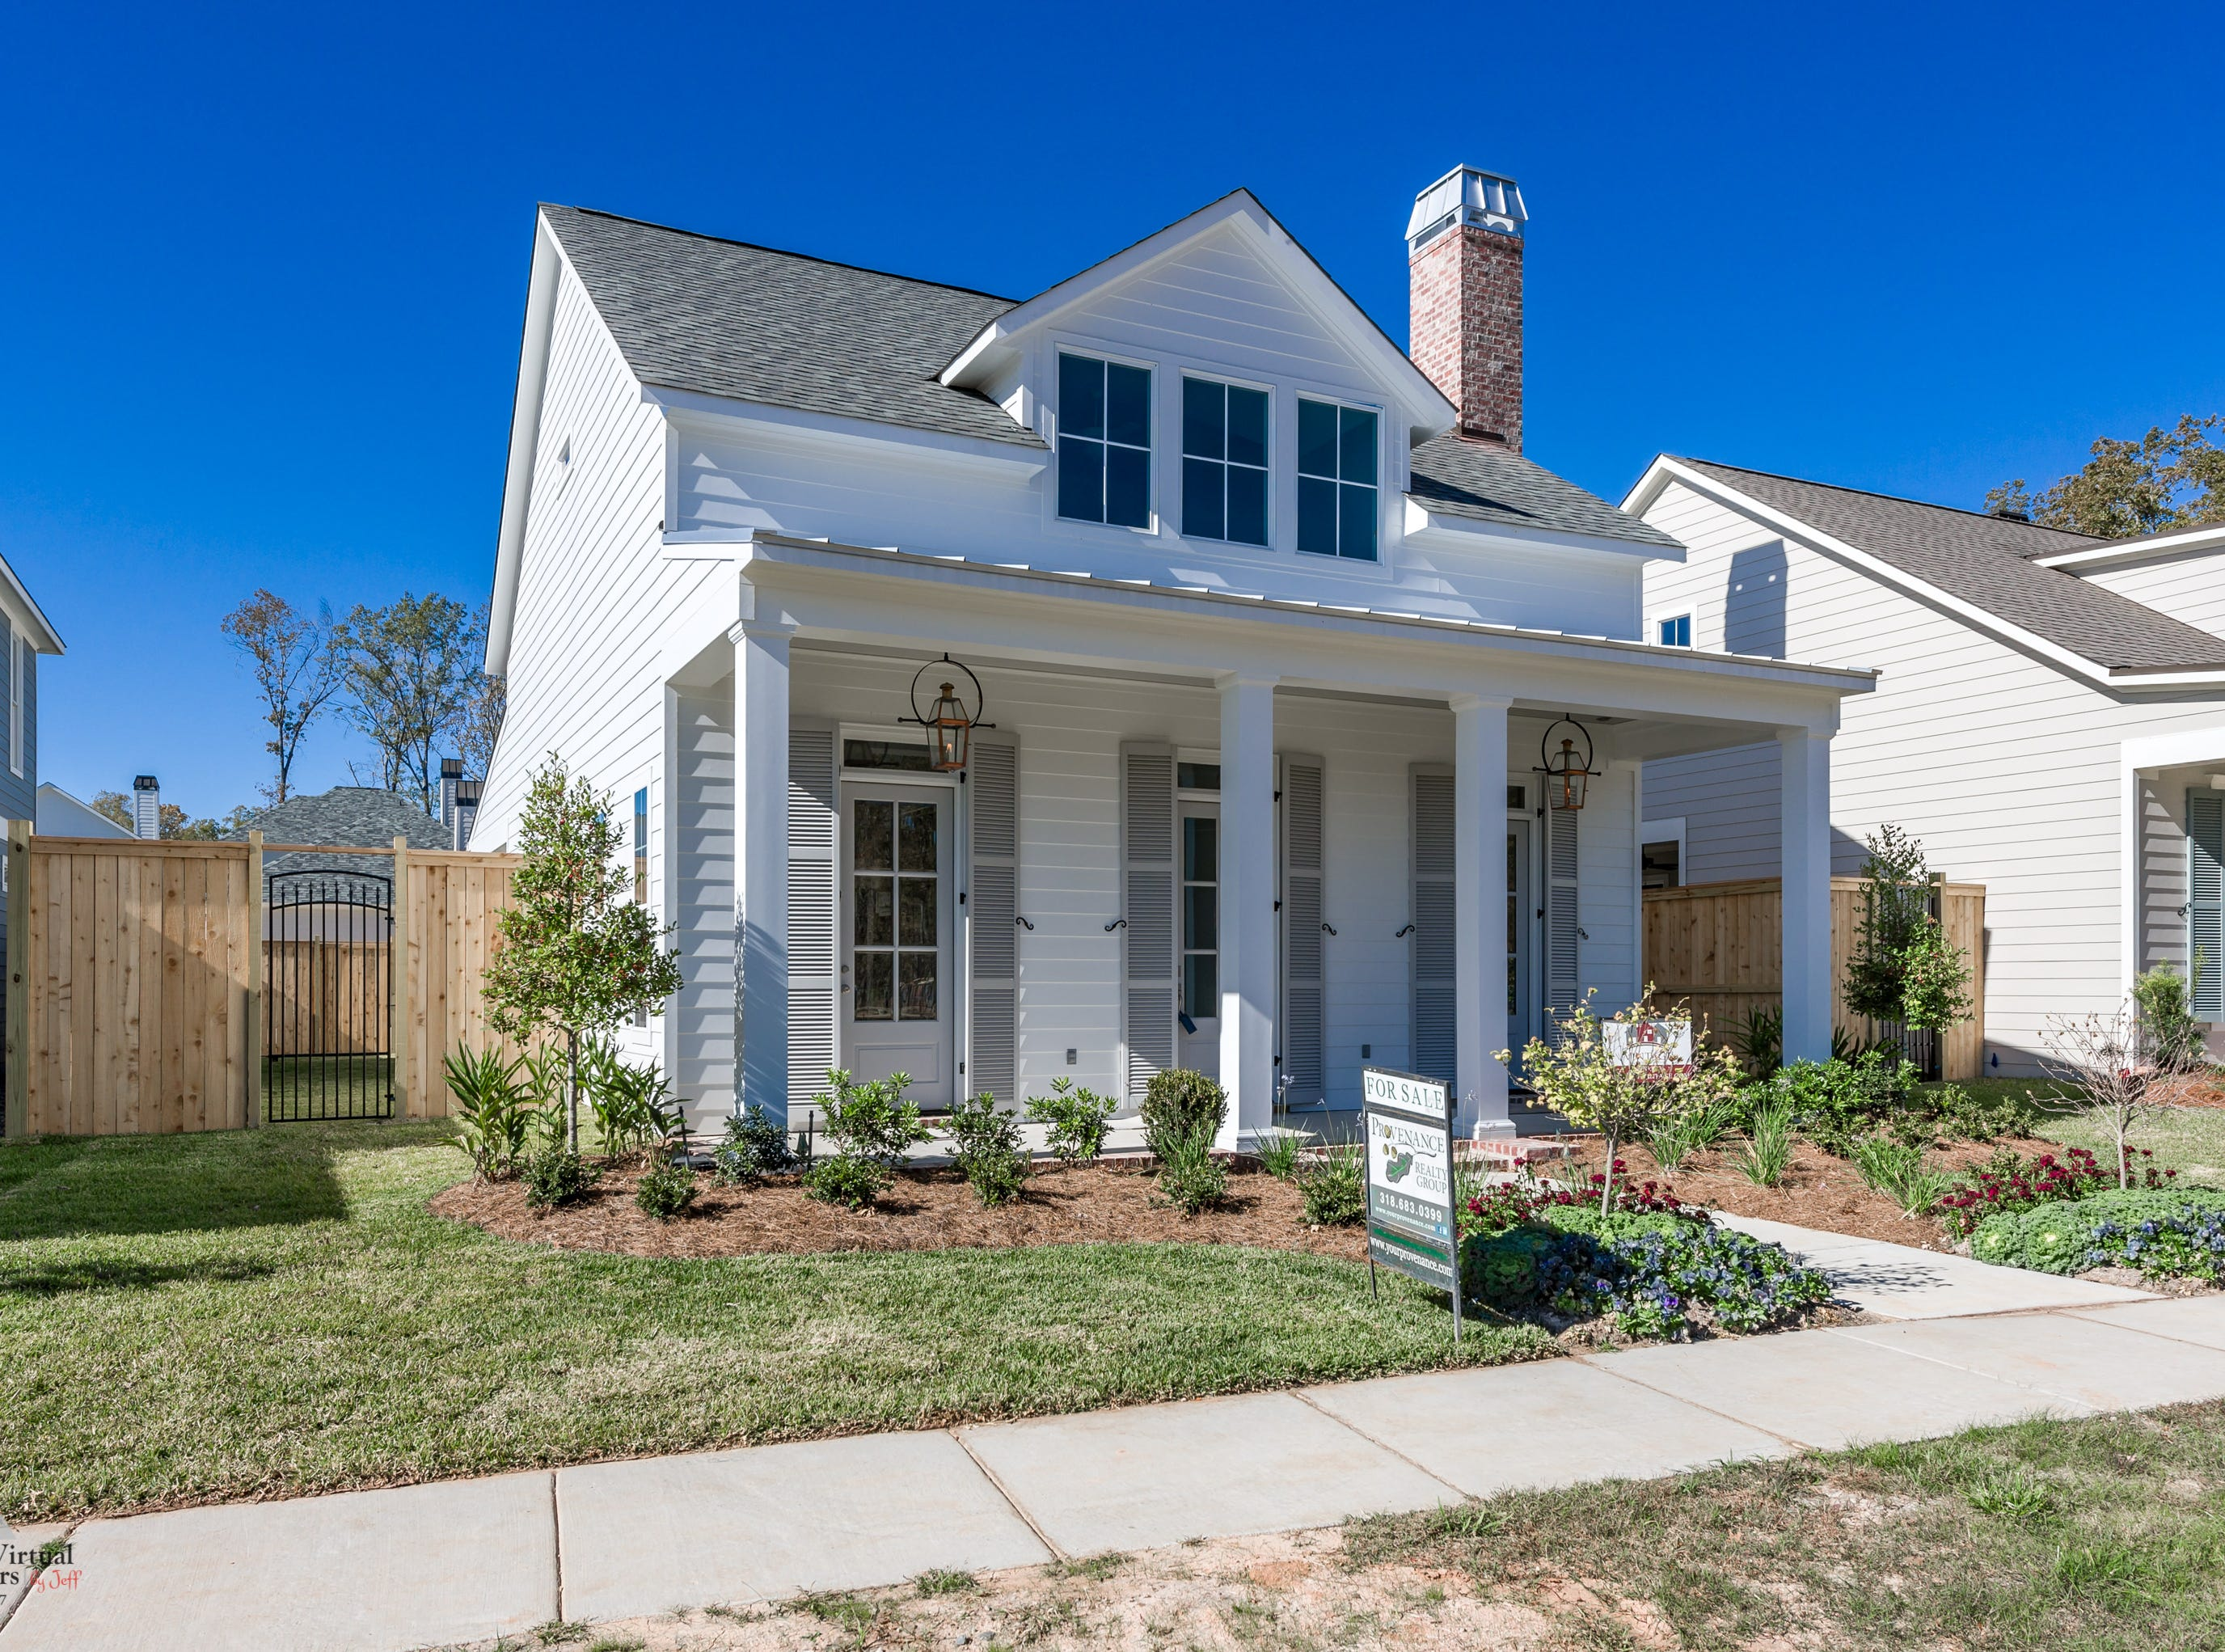 2127 Woodsong Lane,   #294, Shreveport  Price: $629,000  Details: 4 bedrooms, 5 bathrooms, 3,388 square feet  Special features: Custom home with open floor plan in Provenance,  New Orleans style courtyard with fountain and outdoor kitchen.  Contact: Susannah Hodges, 683-0399